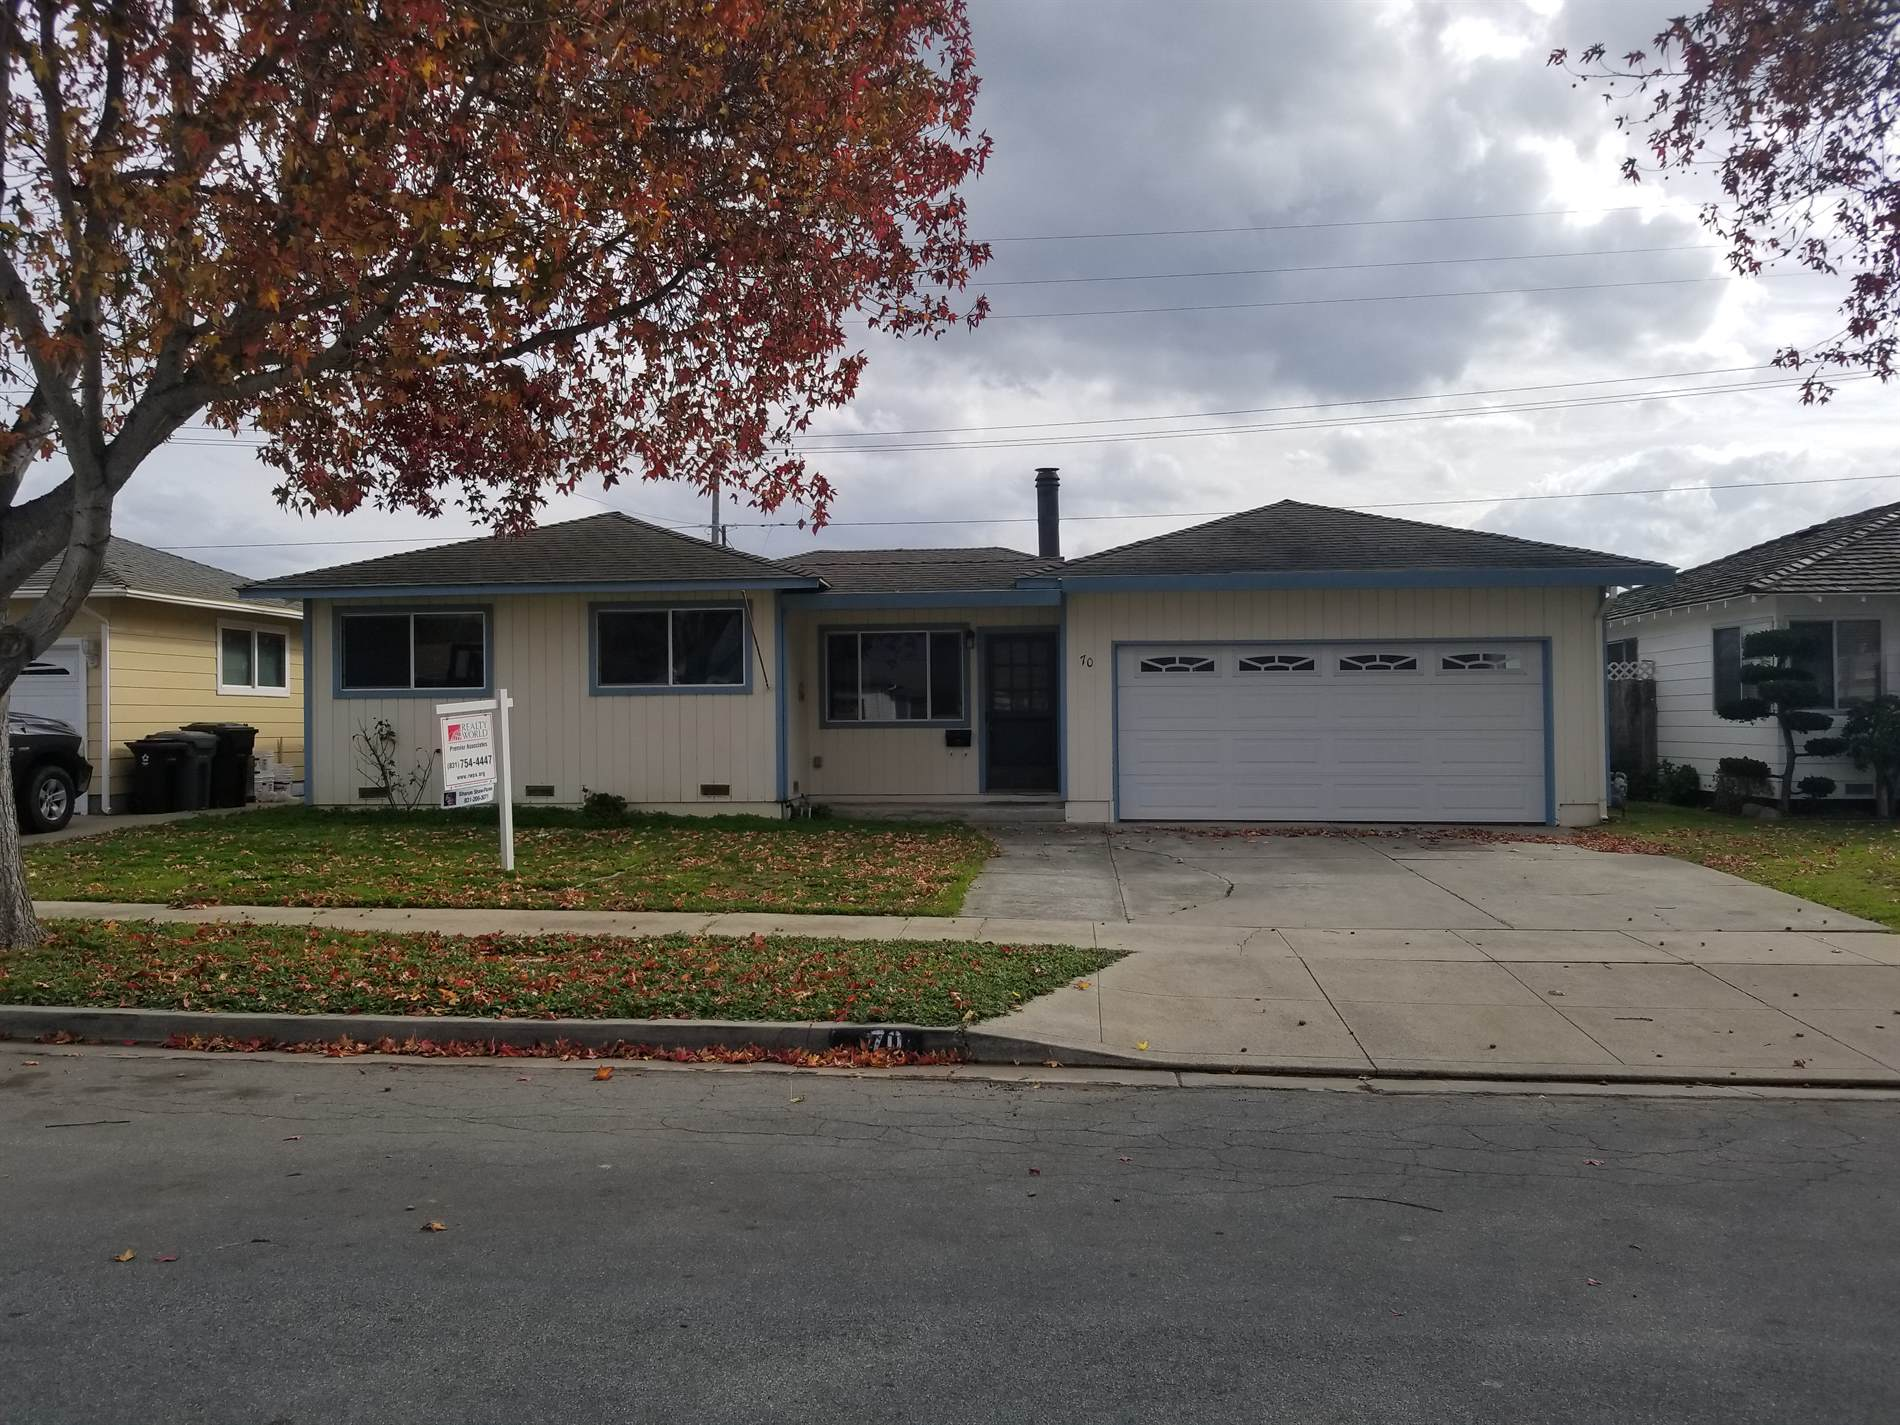 70 Saint Francis WAY, Salinas, California